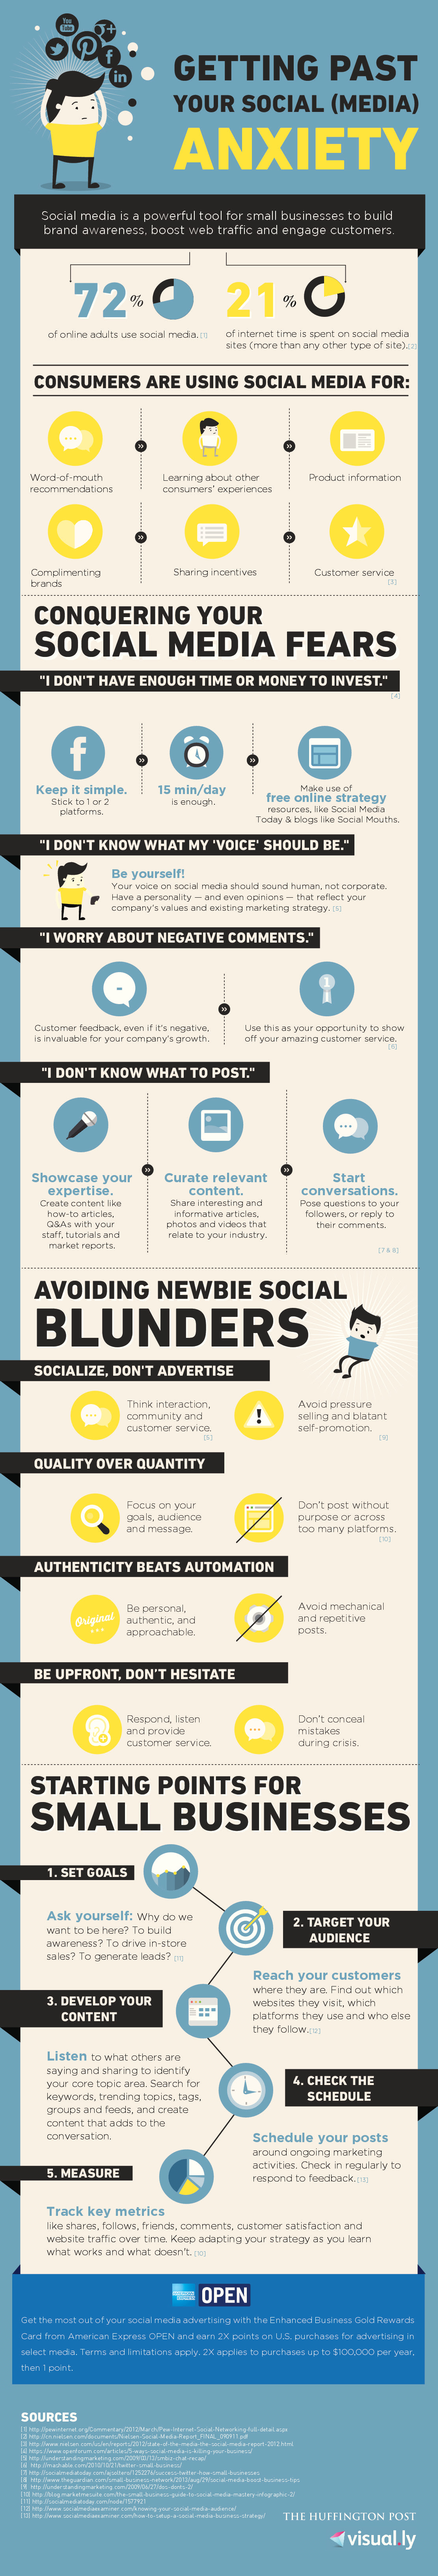 INFOGRAPHIC: The Most Common Social Media Fears And How To Get Over Them